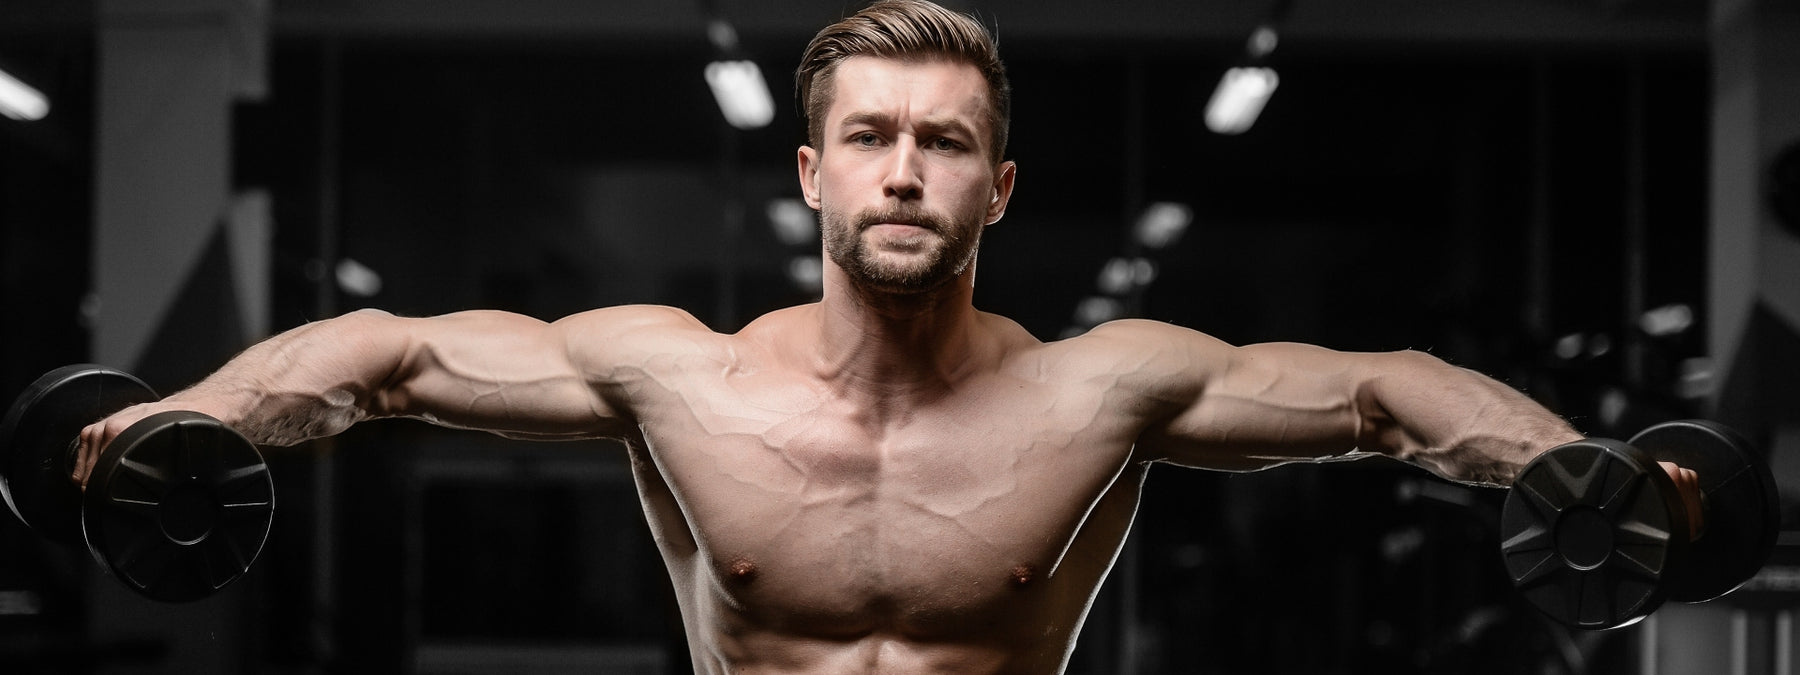 Best Shoulder Workout - 5 Things You Must Know